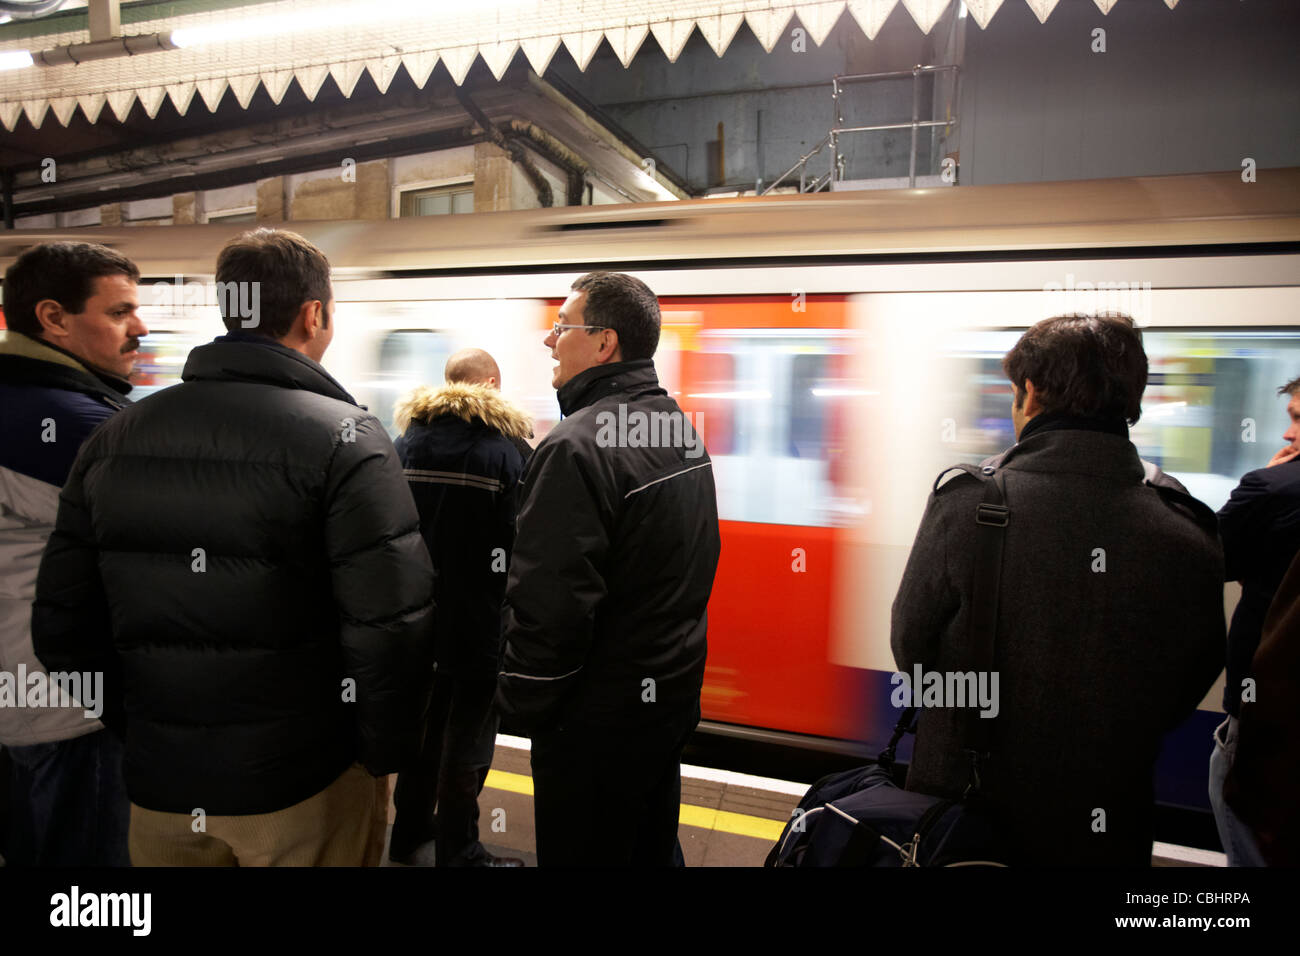 people standing on the platform as train speeds by london underground england united kingdom uk - Stock Image